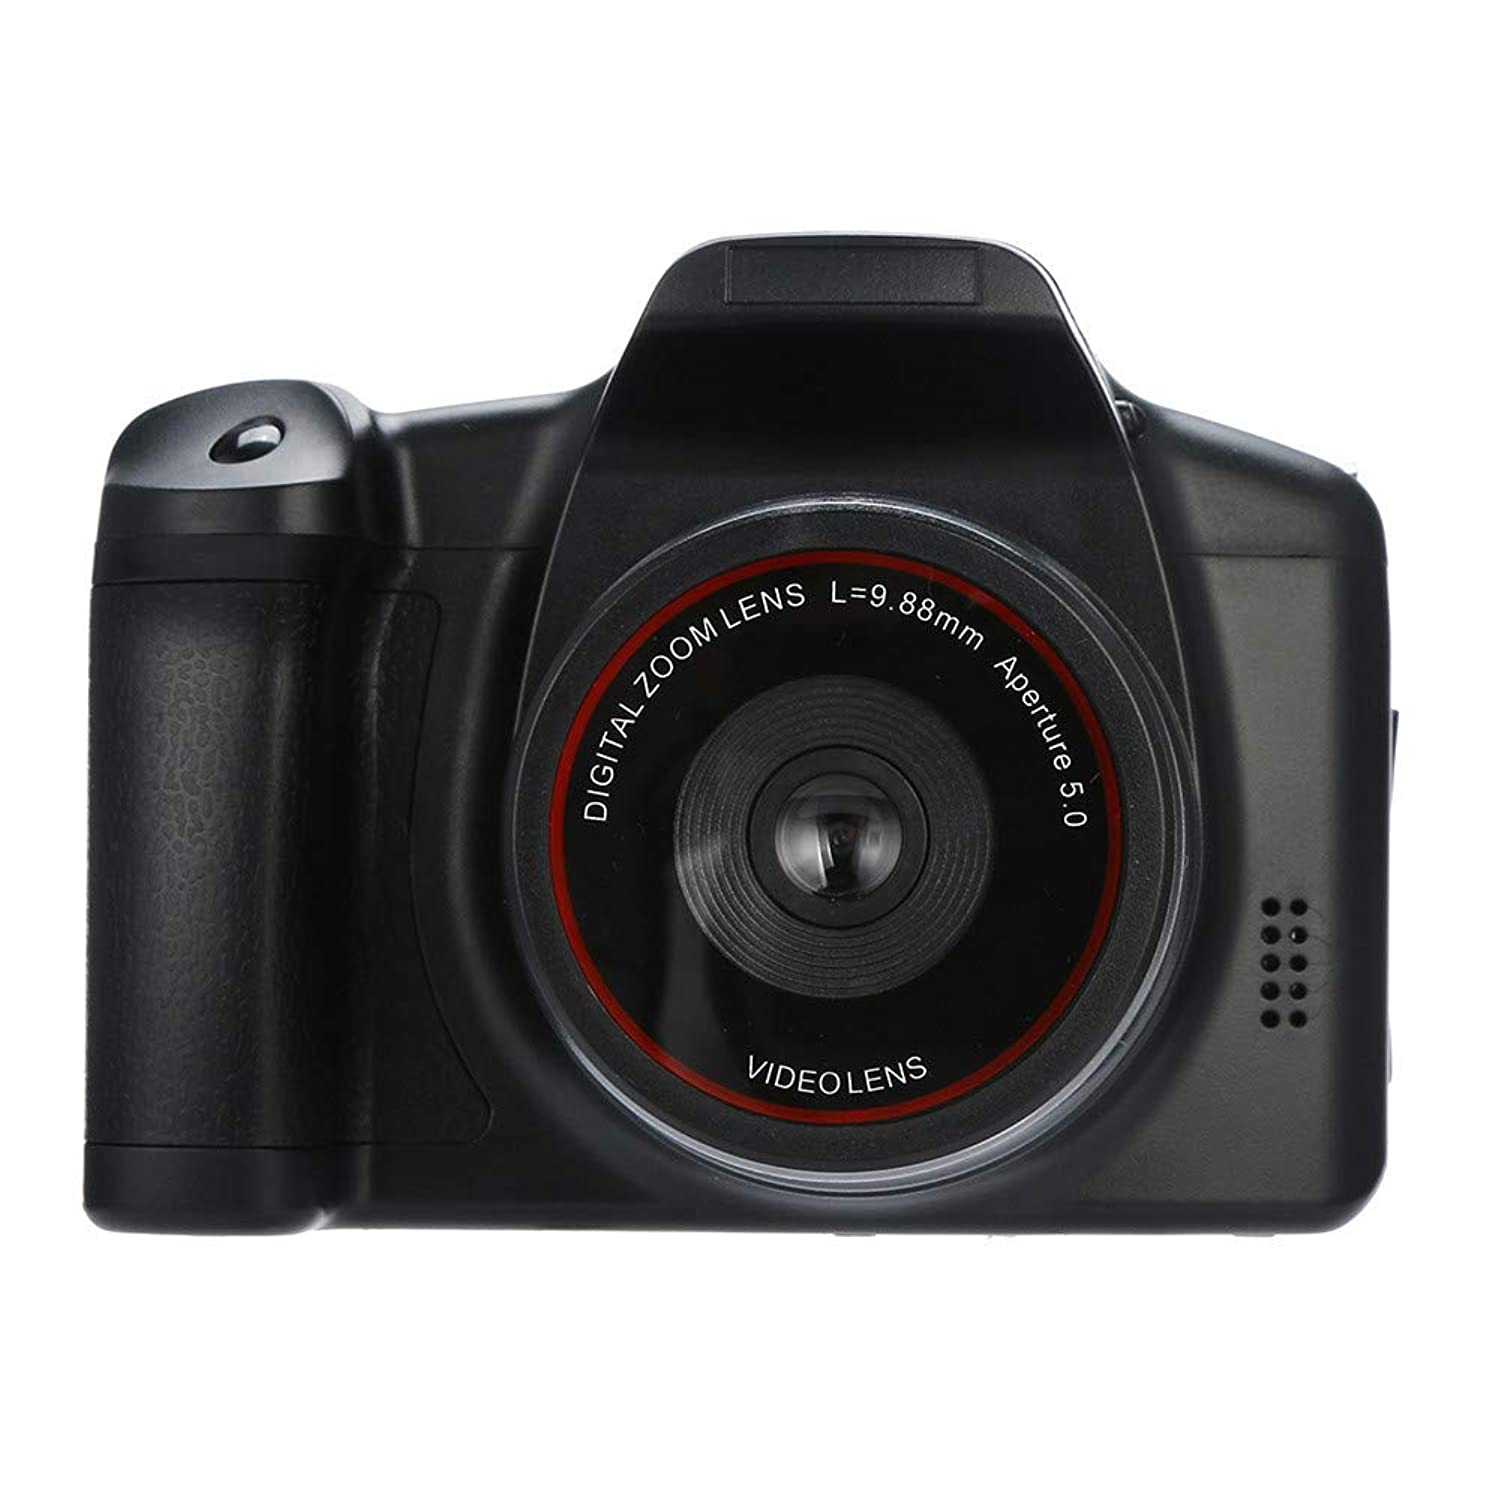 Knightly Video Camcorder HD 1080P Handheld Digital Camera 16X Digital Zoom Waterproof Dual Screen WiFi HD 1080P Sports Action Camera DVR Cam Camcorder Super Lightweight Small in Size (Black)